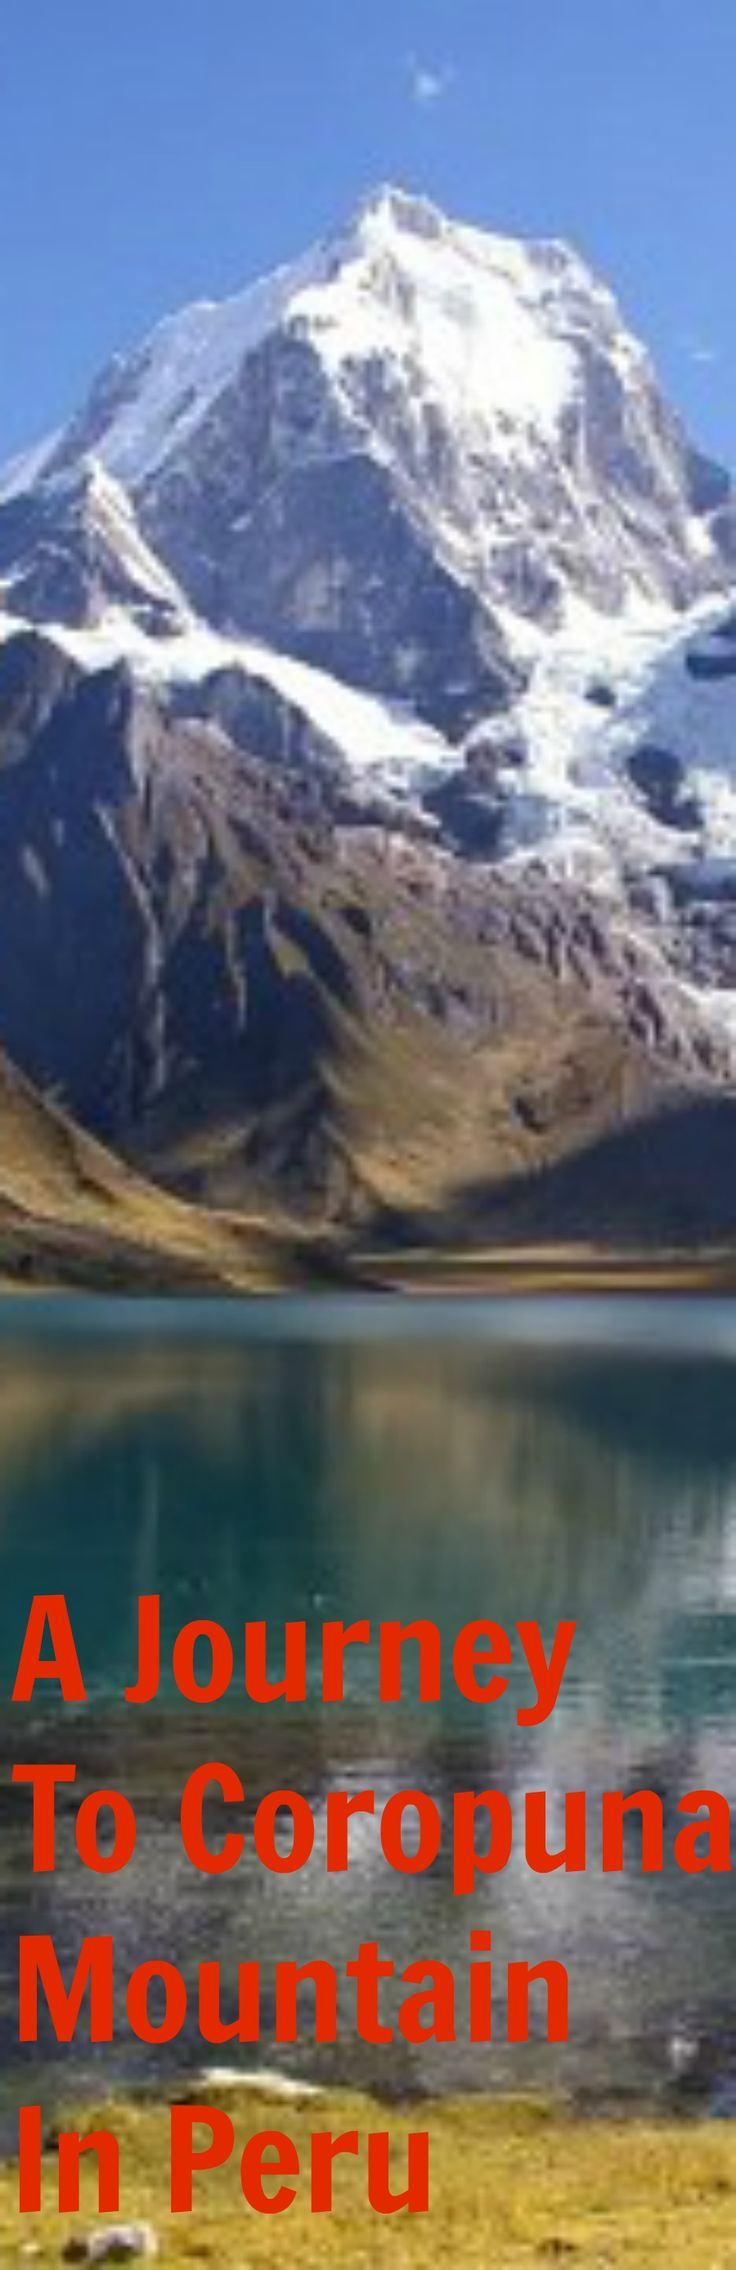 A Journey To Coropuna Mountain In Peru   The mountain is covered by a thick ice cap, the second largest in the tropics, that has existed since at least the Pliocene and has undergone a few important phases of expansion and reduction.